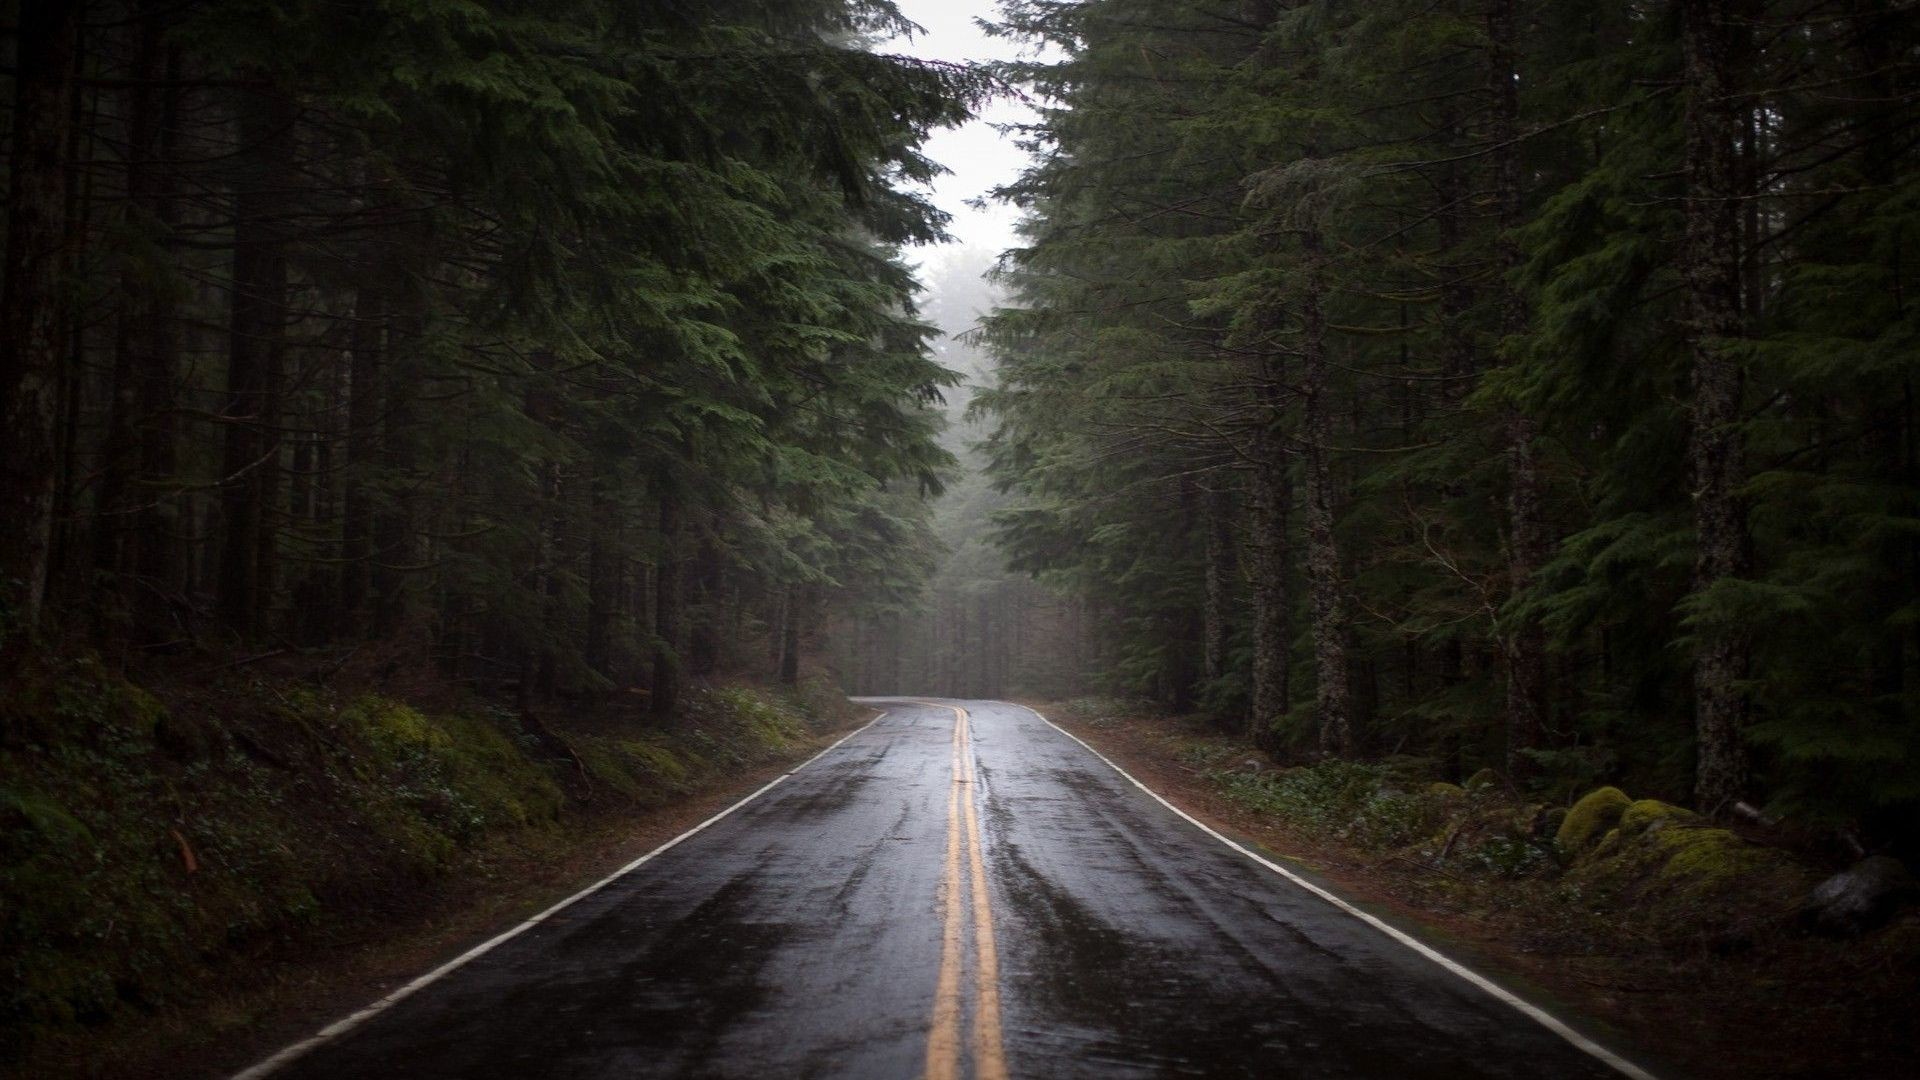 Rainy Forest Road Wallpaper – MixHD wallpapers